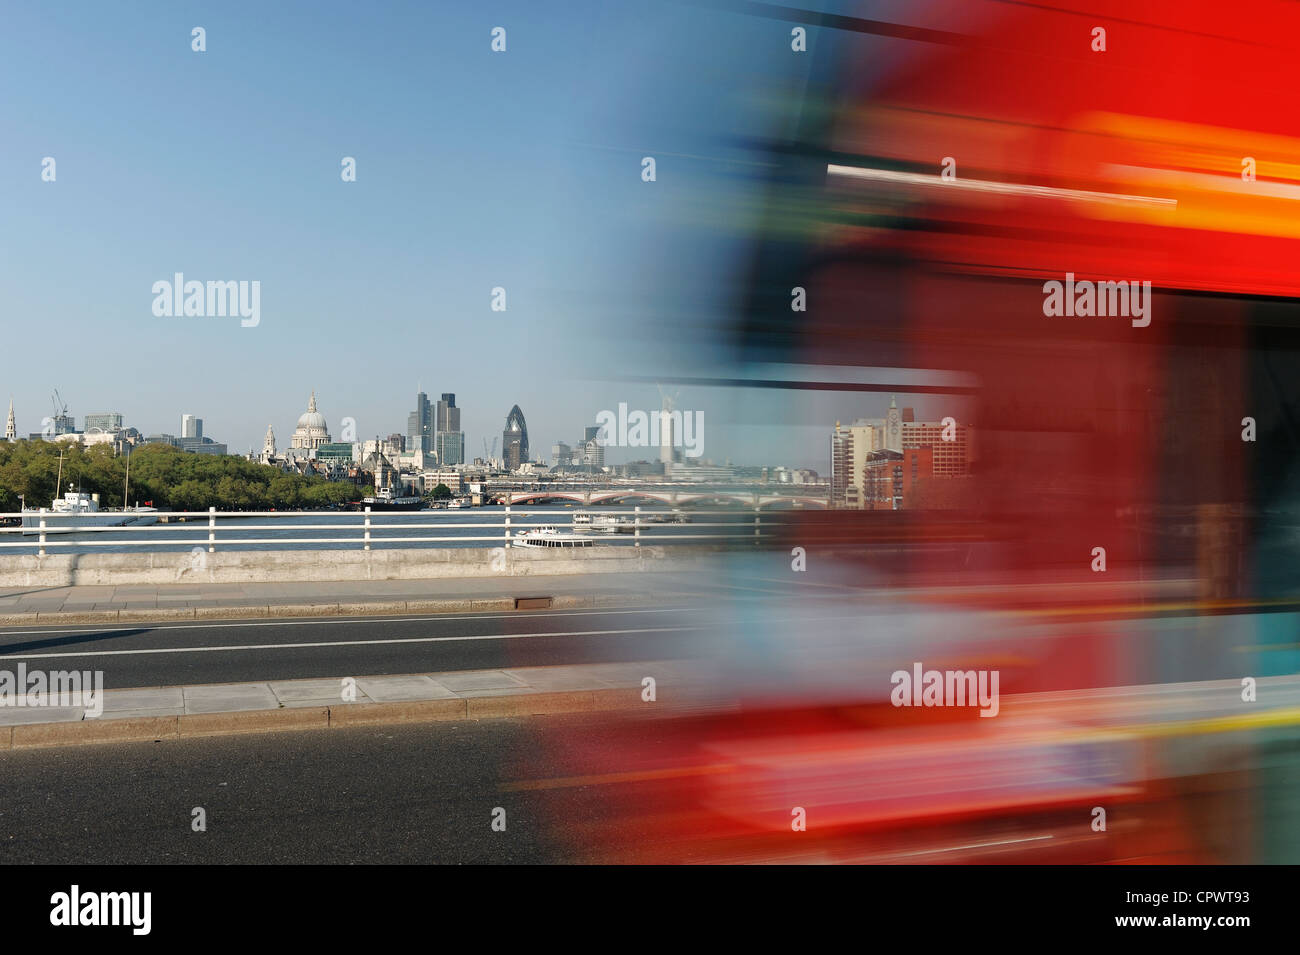 Traffic speeds along Waterloo bridge with the City of London skyline behind - Stock Image